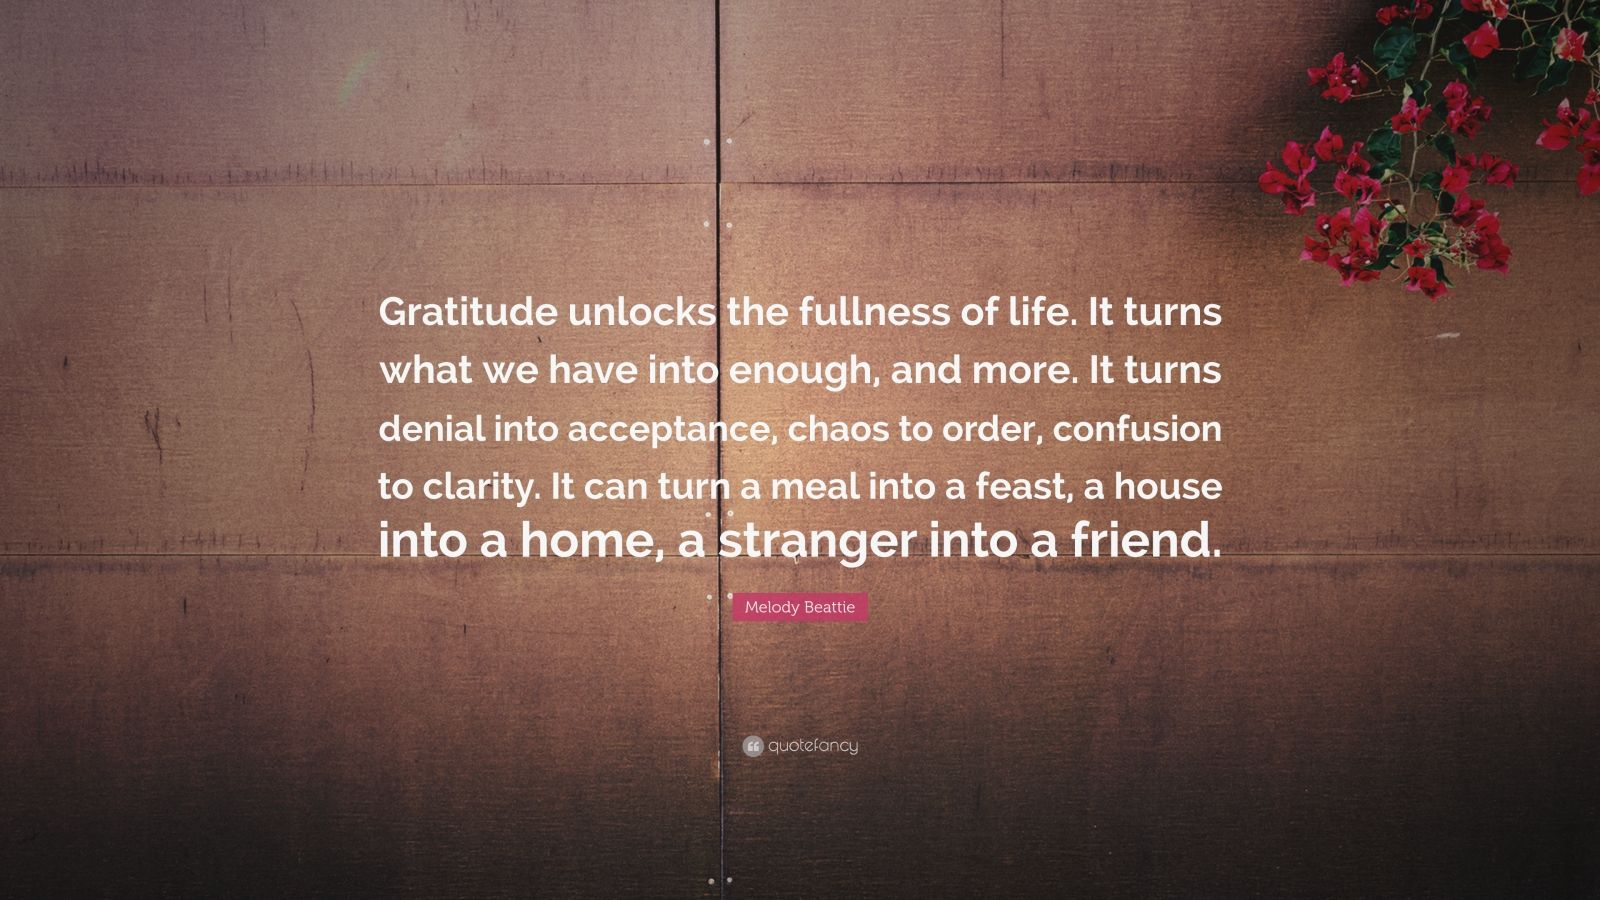 Life Success Quotes Hd Wallpapers Melody Beattie Quote Gratitude Unlocks The Fullness Of